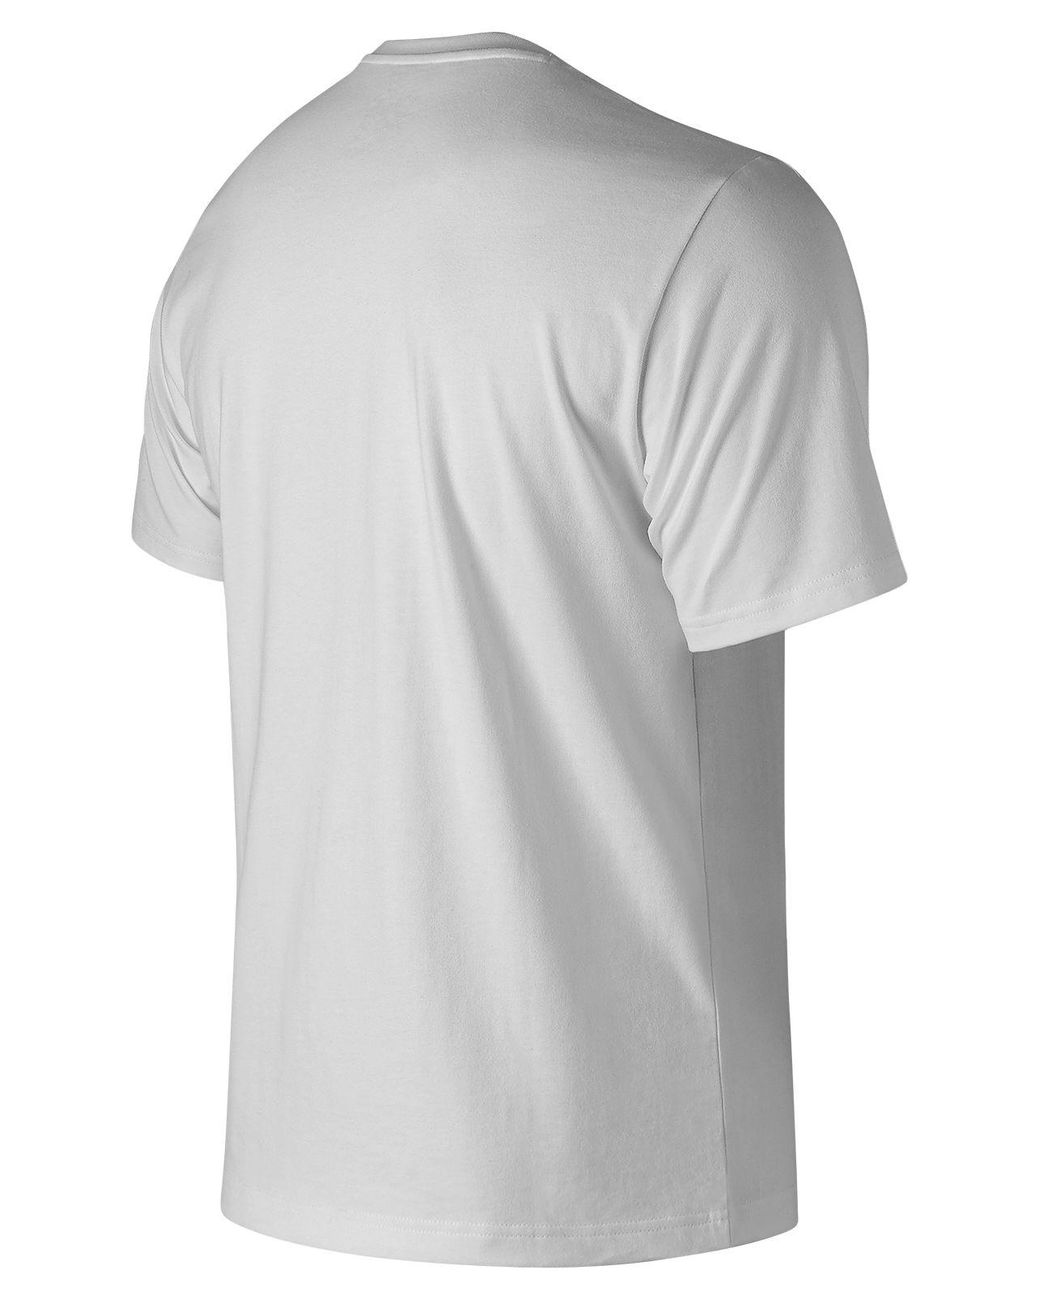 0fa3f9d8 New Balance Essentials Nb Legacy Tee in White for Men - Save 55% - Lyst